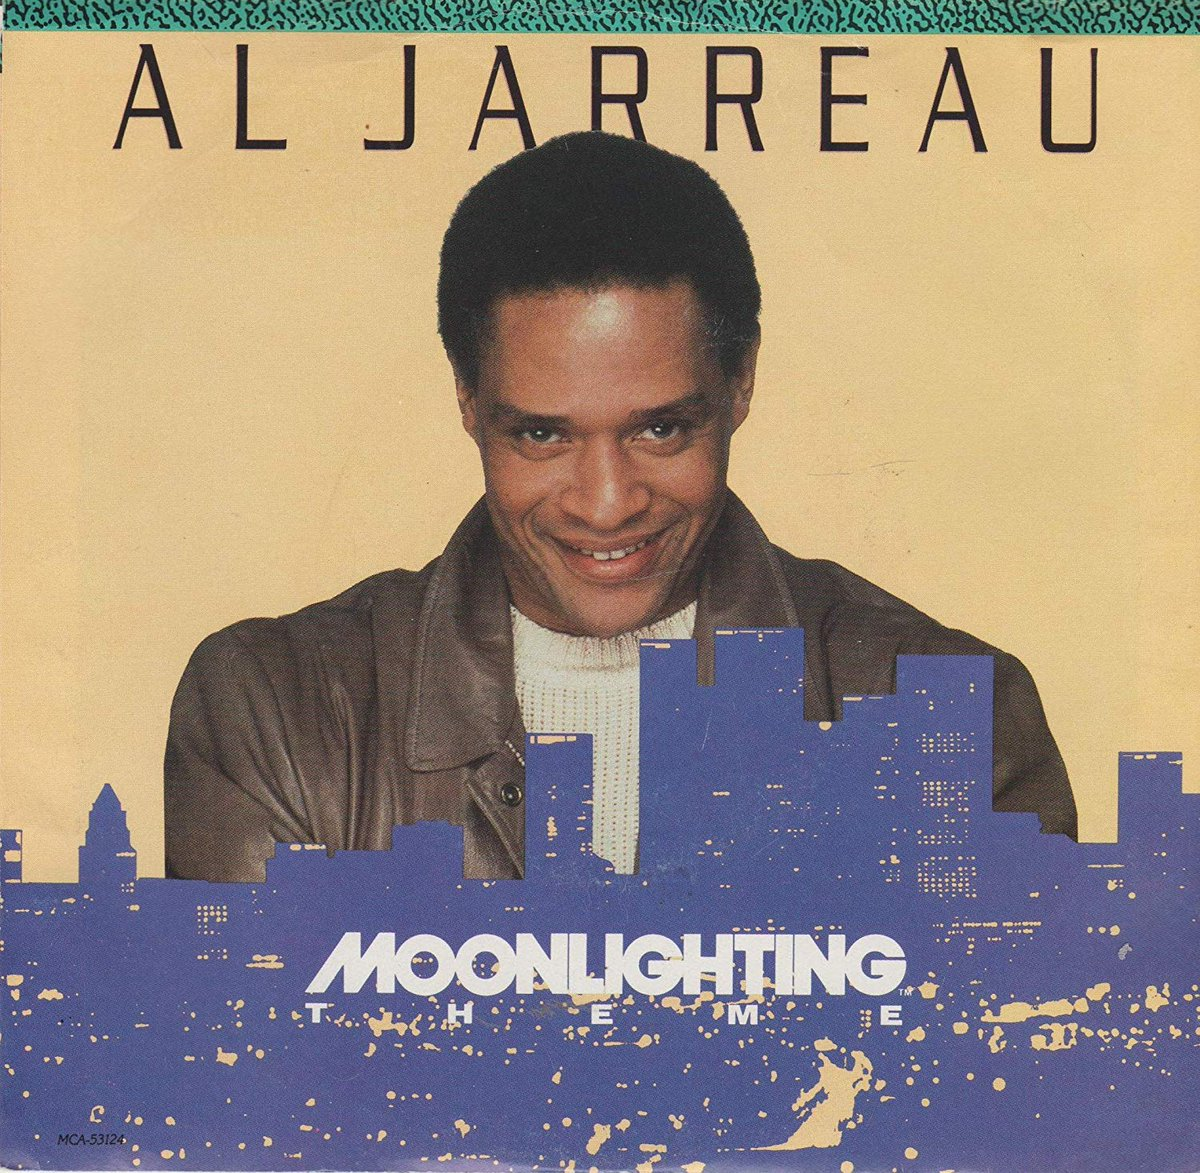 #NP #moonlighting || @AlJarreau   on the #RoadShow with @danielthebigone  #TheBIGOne   #OldSchoolWednesday #CoolMusic  Listen live: https://t.co/JVTMuVp3BX https://t.co/MMWdWmkWio